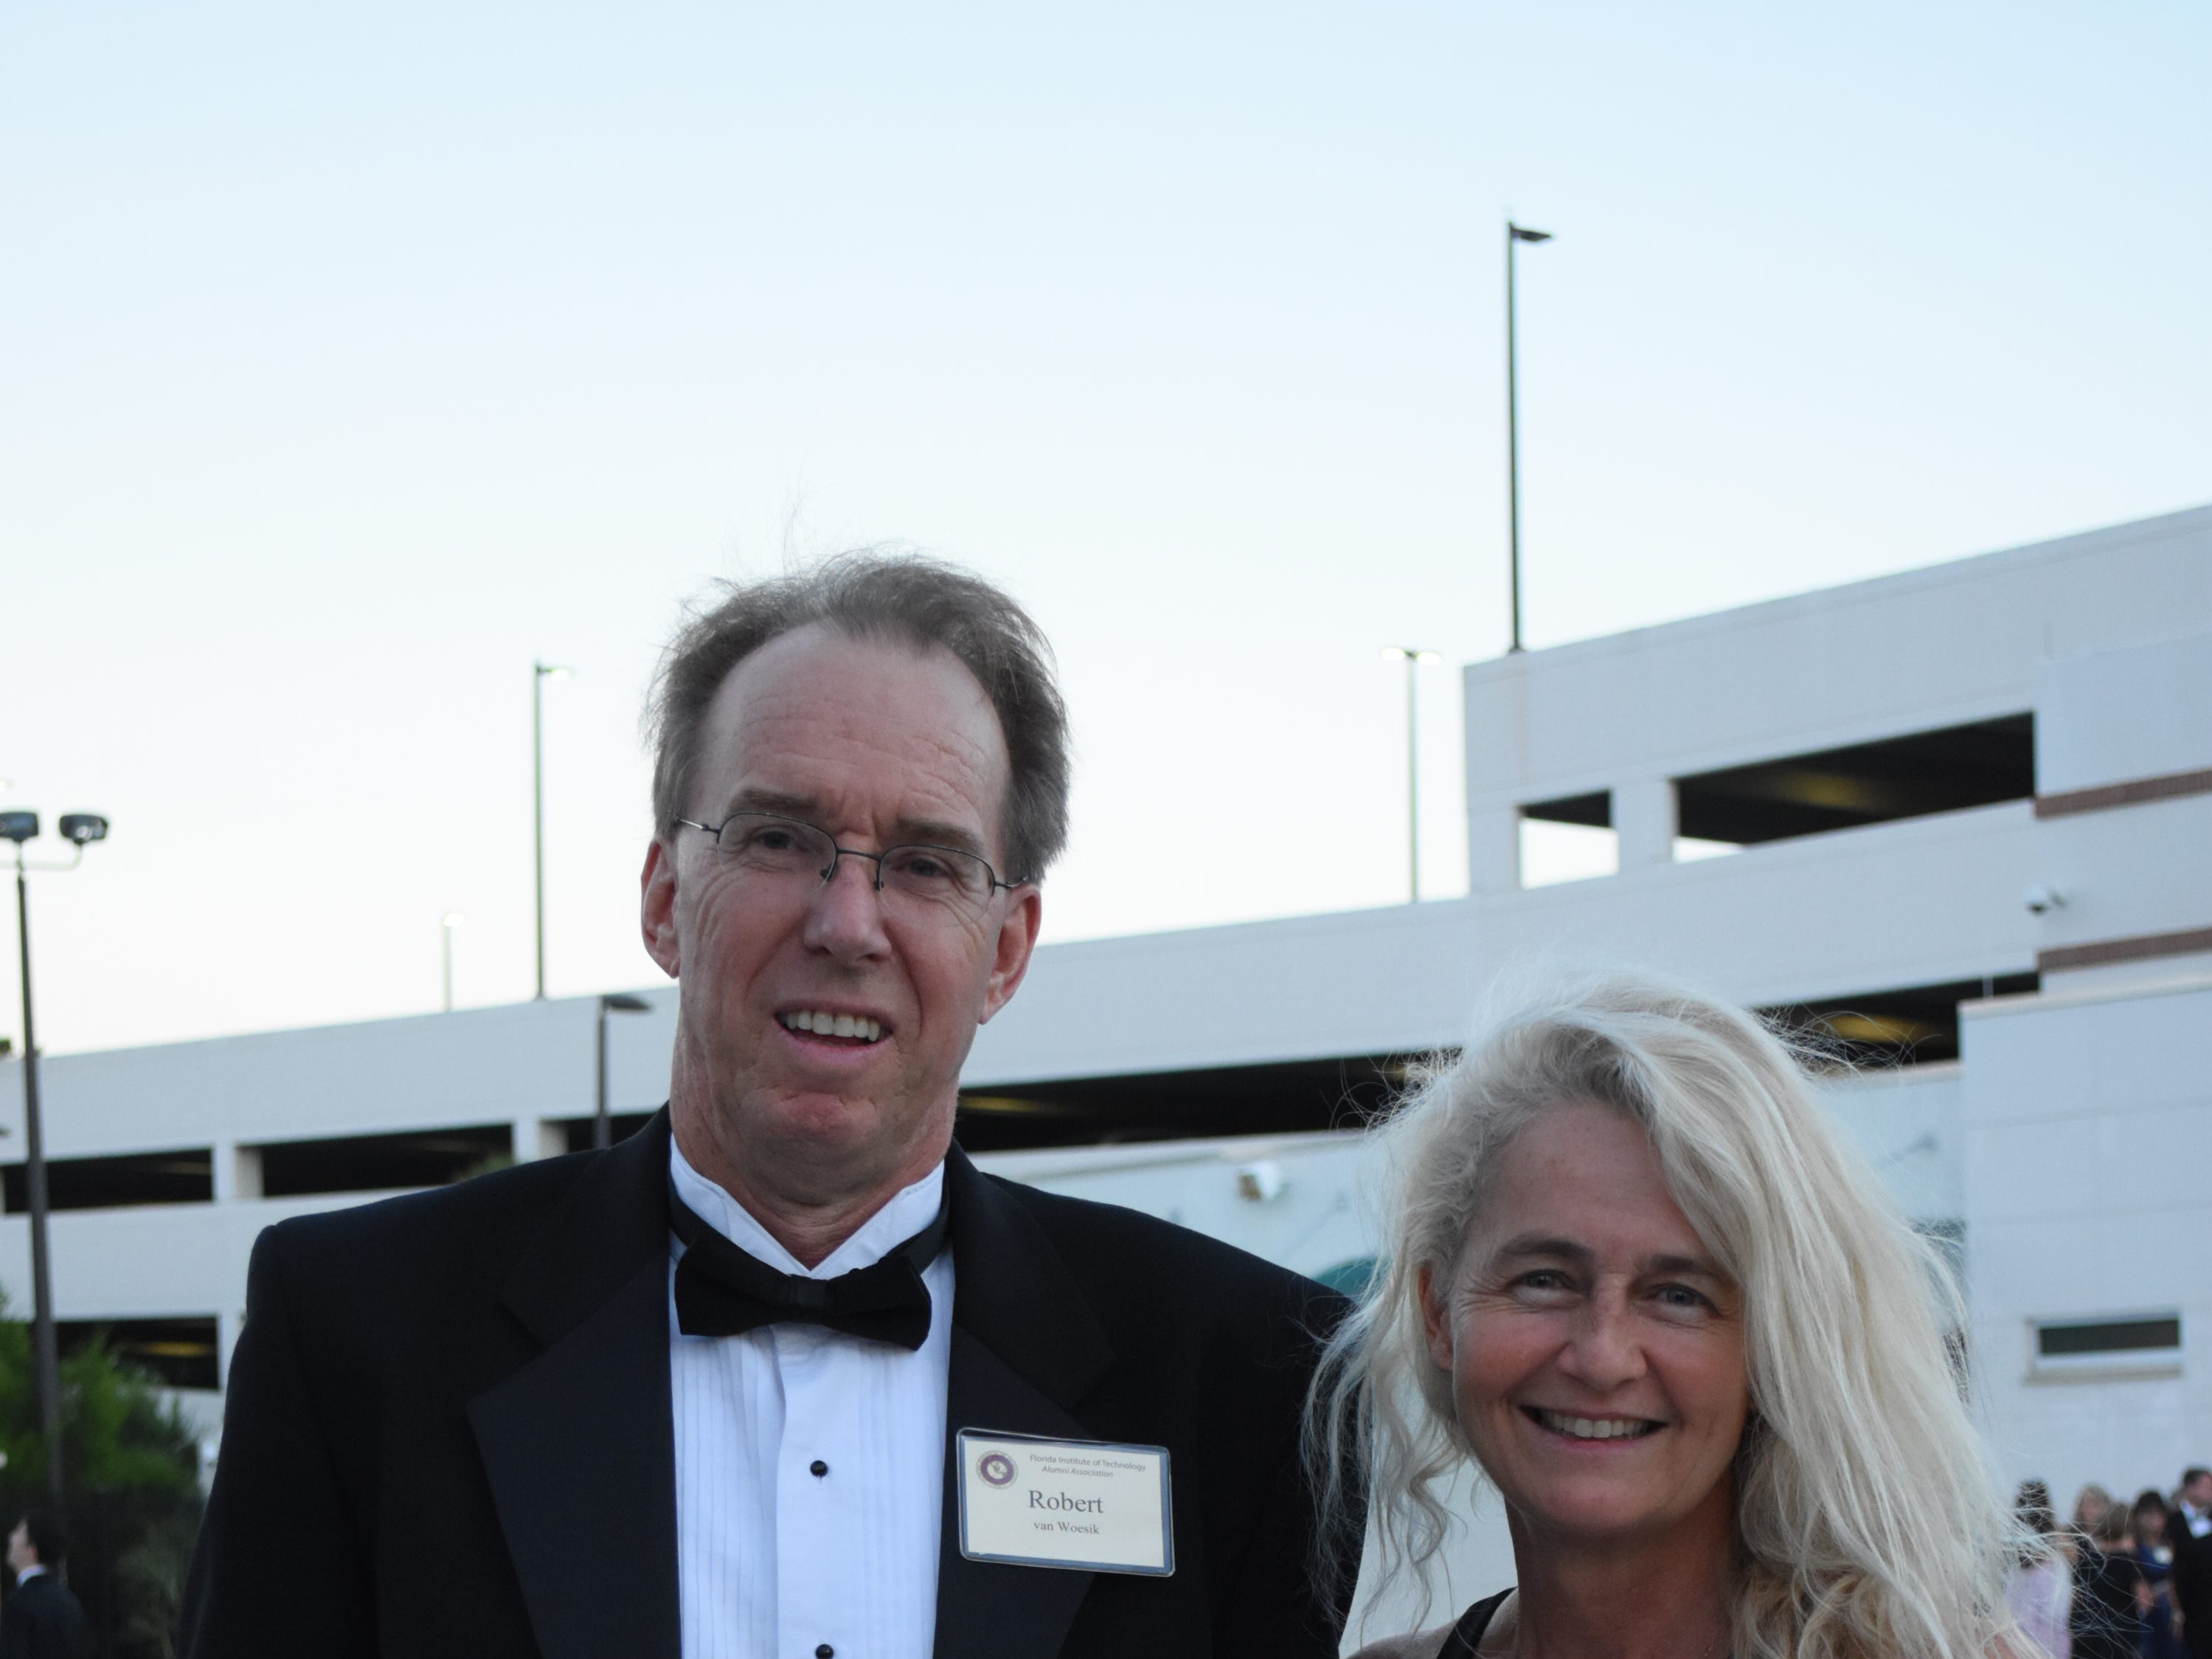 Robert and Sandy van Woesik pose for a photo at Florida Tech's 60th Anniversary Homecoming Gala Oct. 13, 2018, at the Clemente Center.